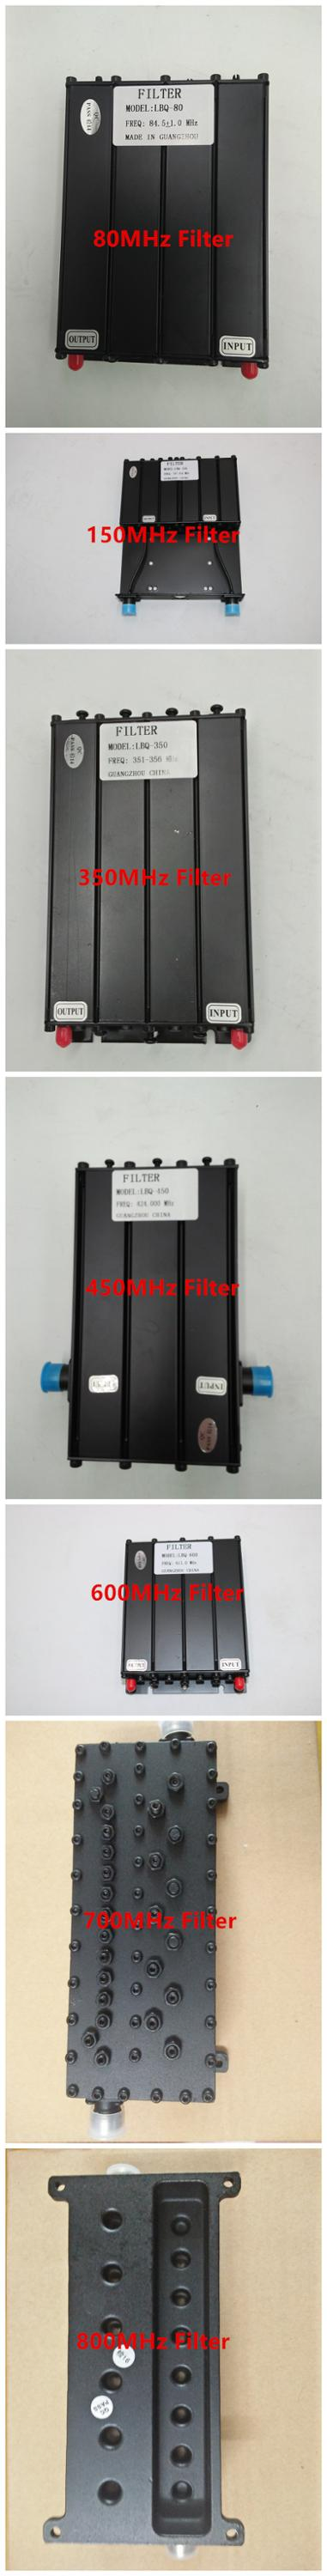 High Quality UHF 400-520MHz Bandpass Filter for Radio Repeater